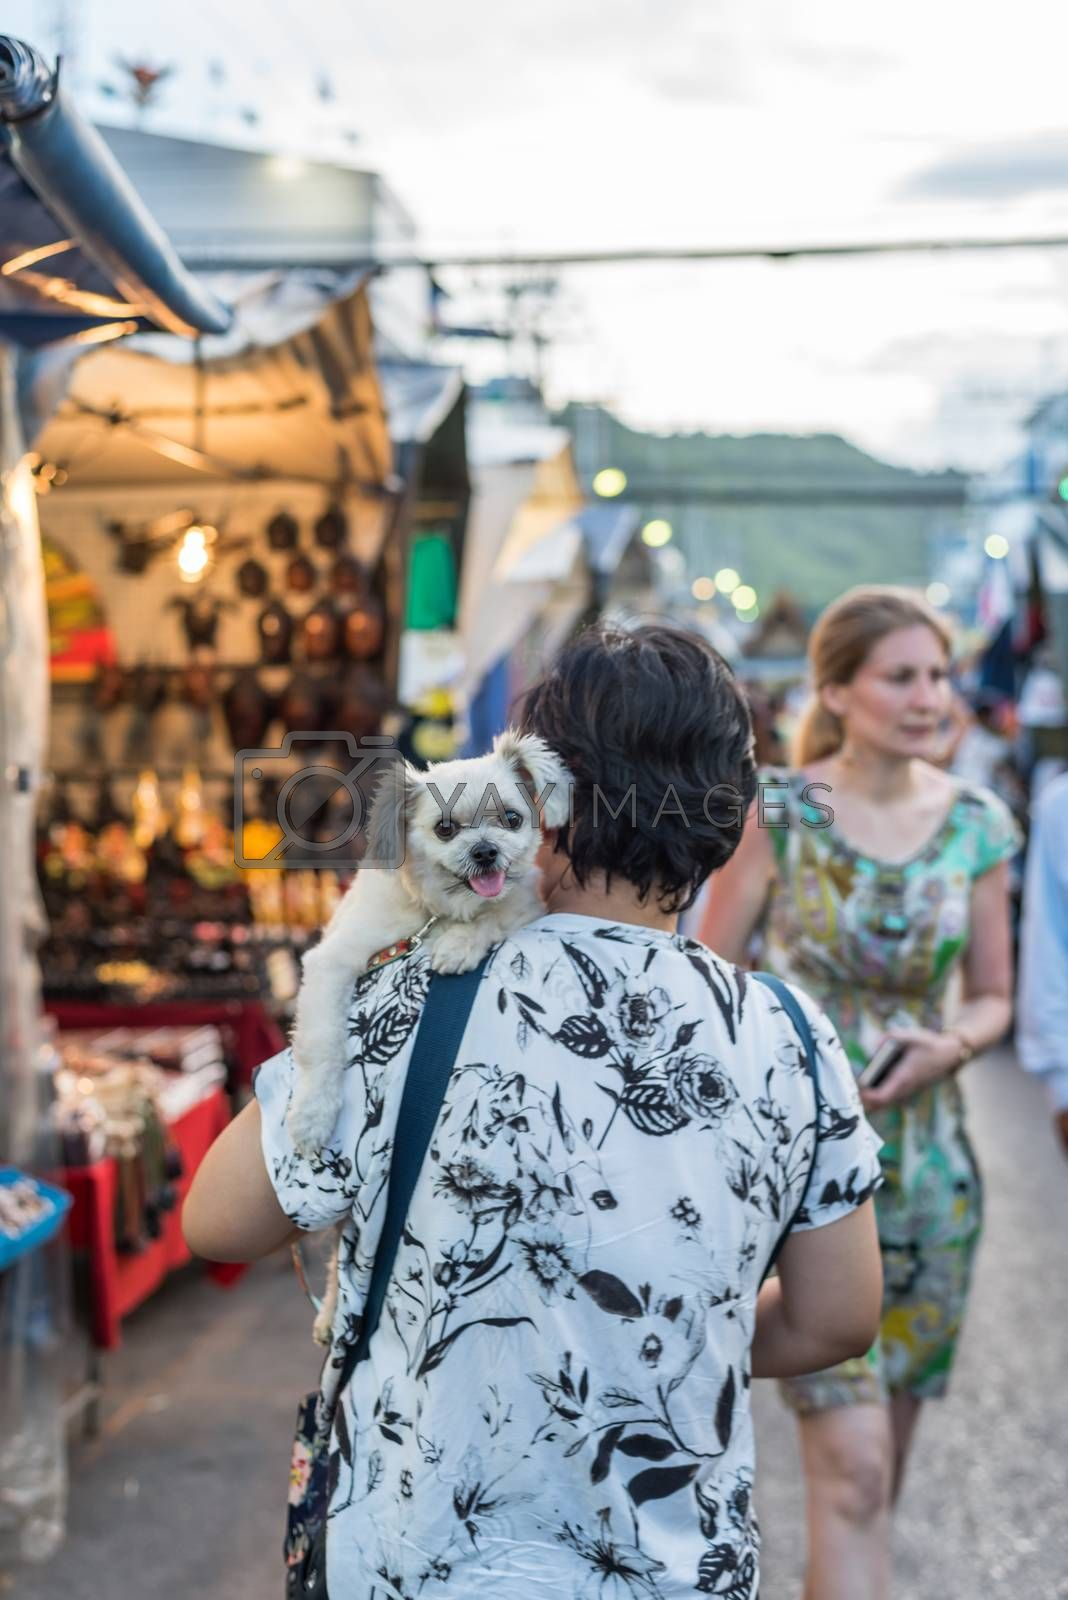 Prachuap Khiri Khan, Thailand - June 17, 2017 : Unidentified woman and the dog walk stroll shopping at Hua Hin night market. The famous night market for travel in Hua Hin is major tourist attraction.